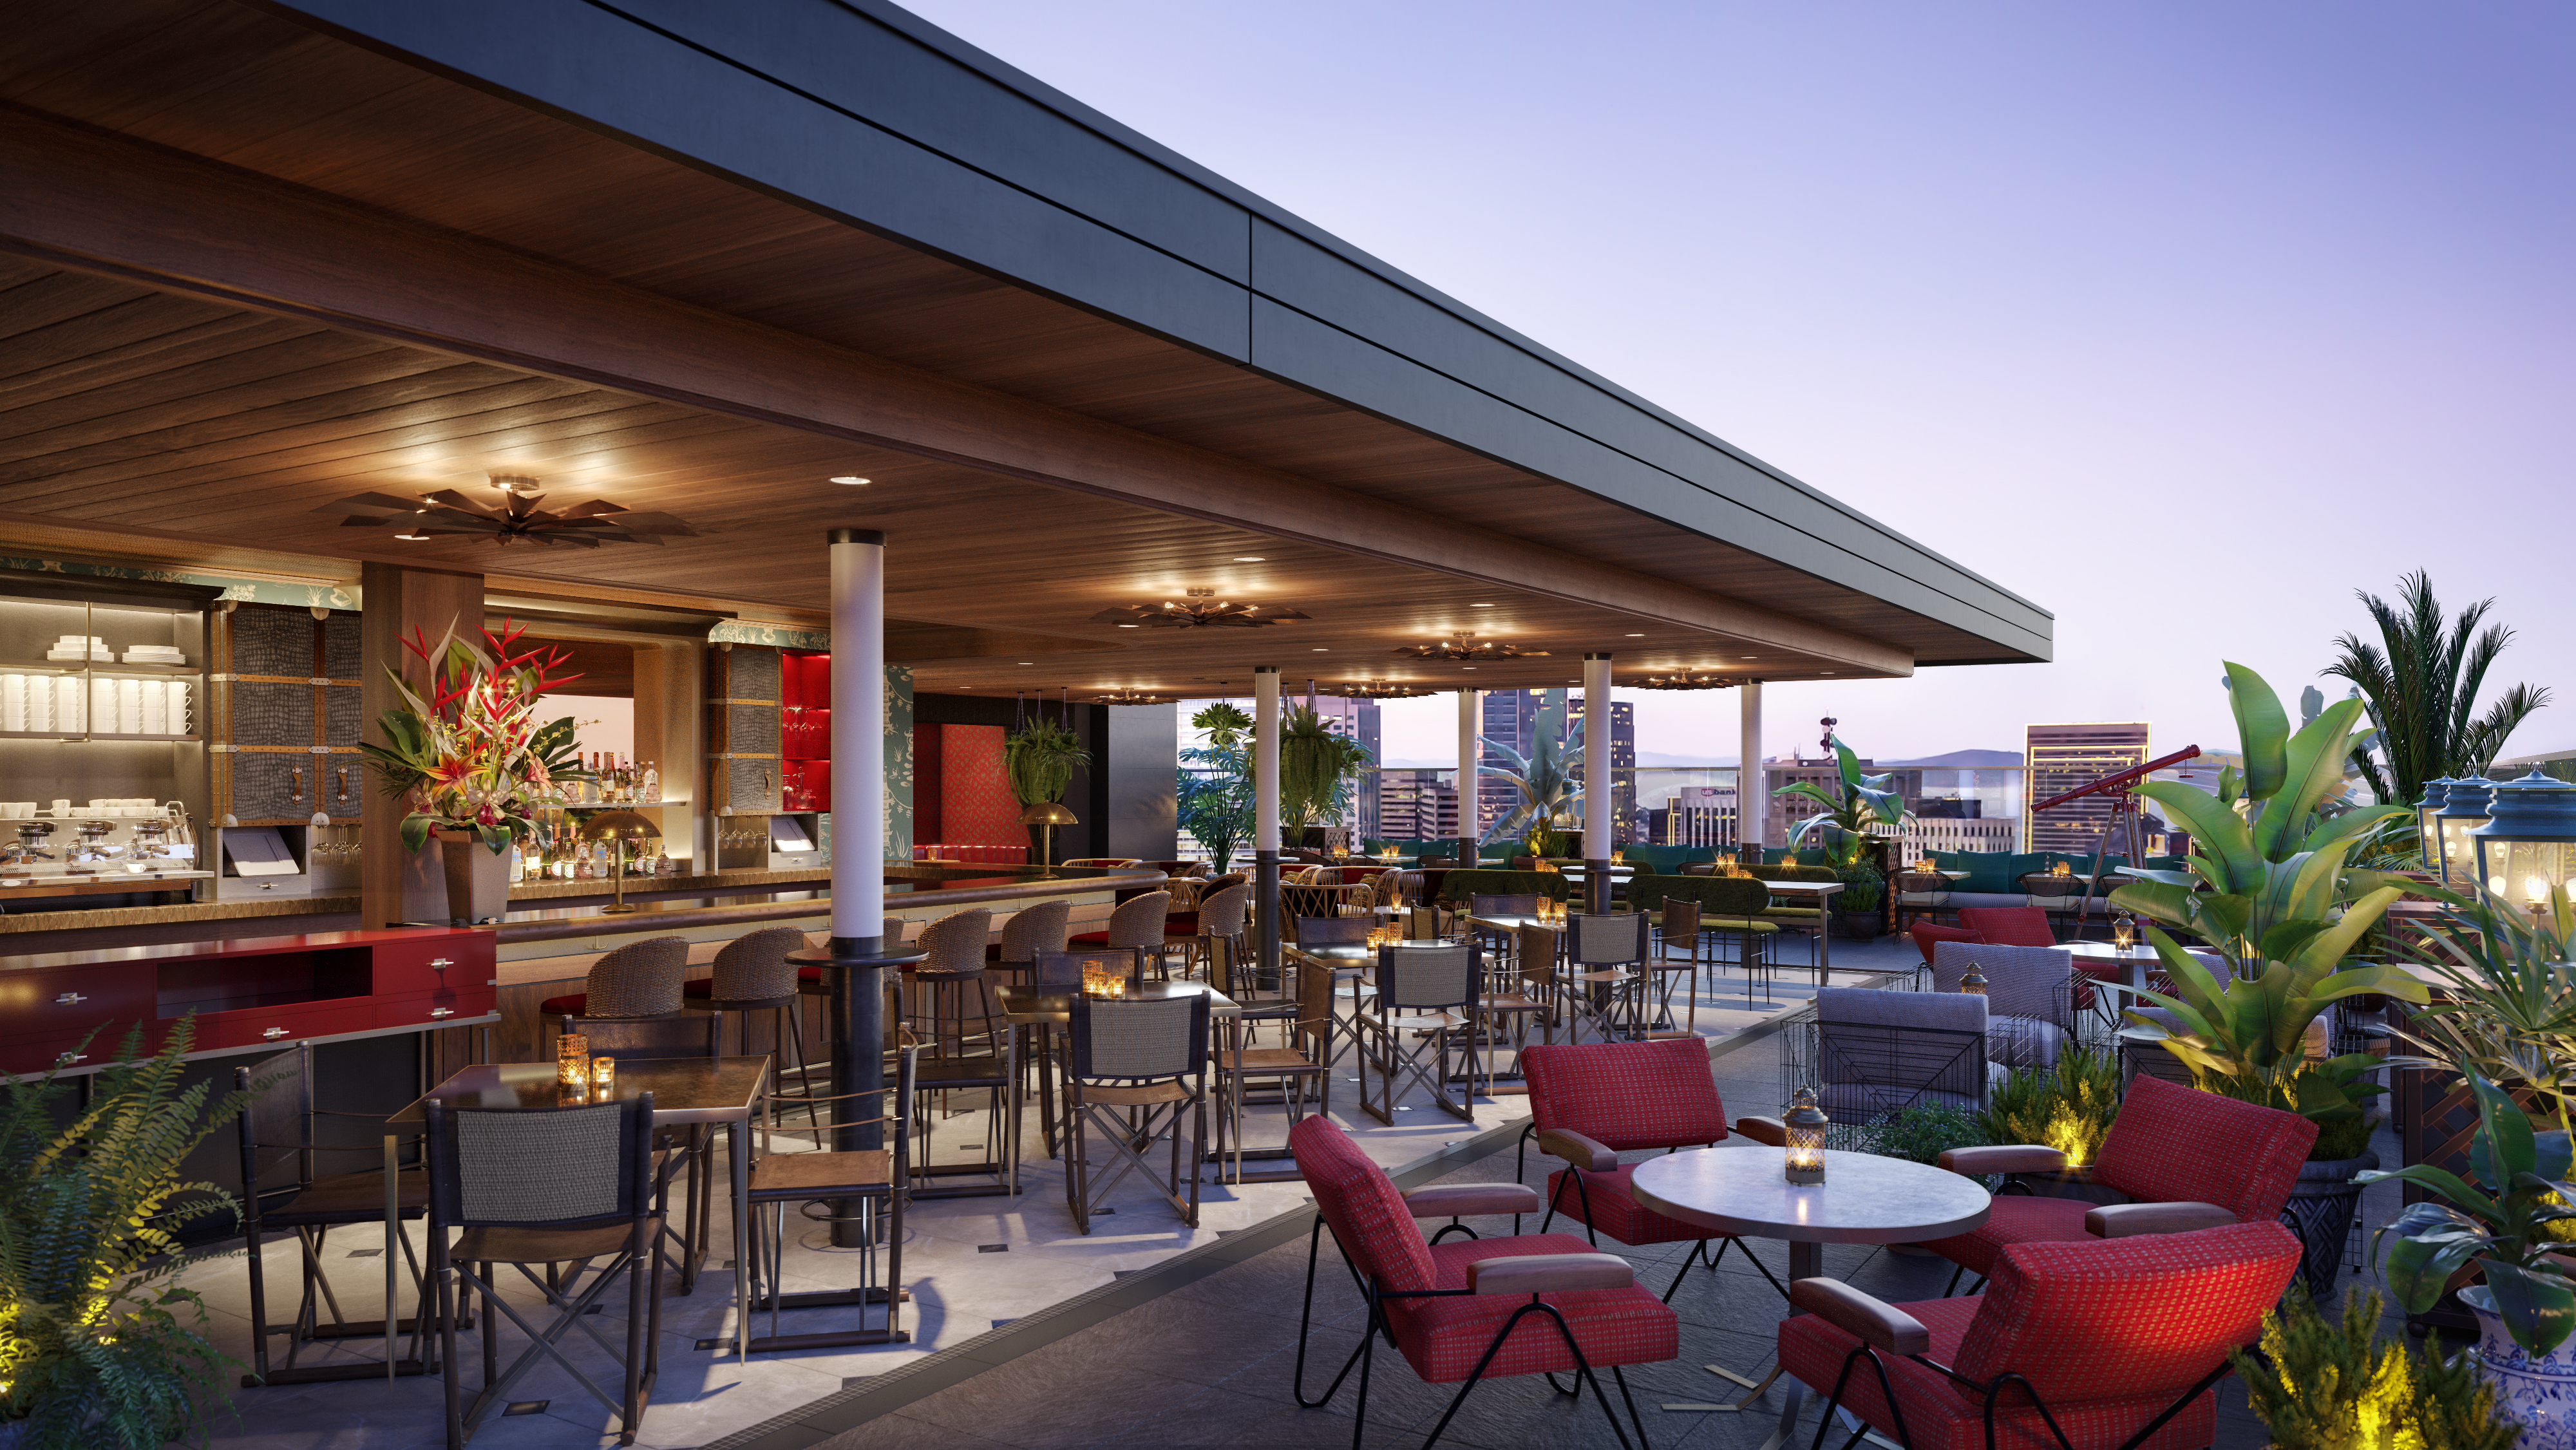 What The Hotel S Rooftop Bar Will Look Like Rendering Courtesy Of Virgin Hotels